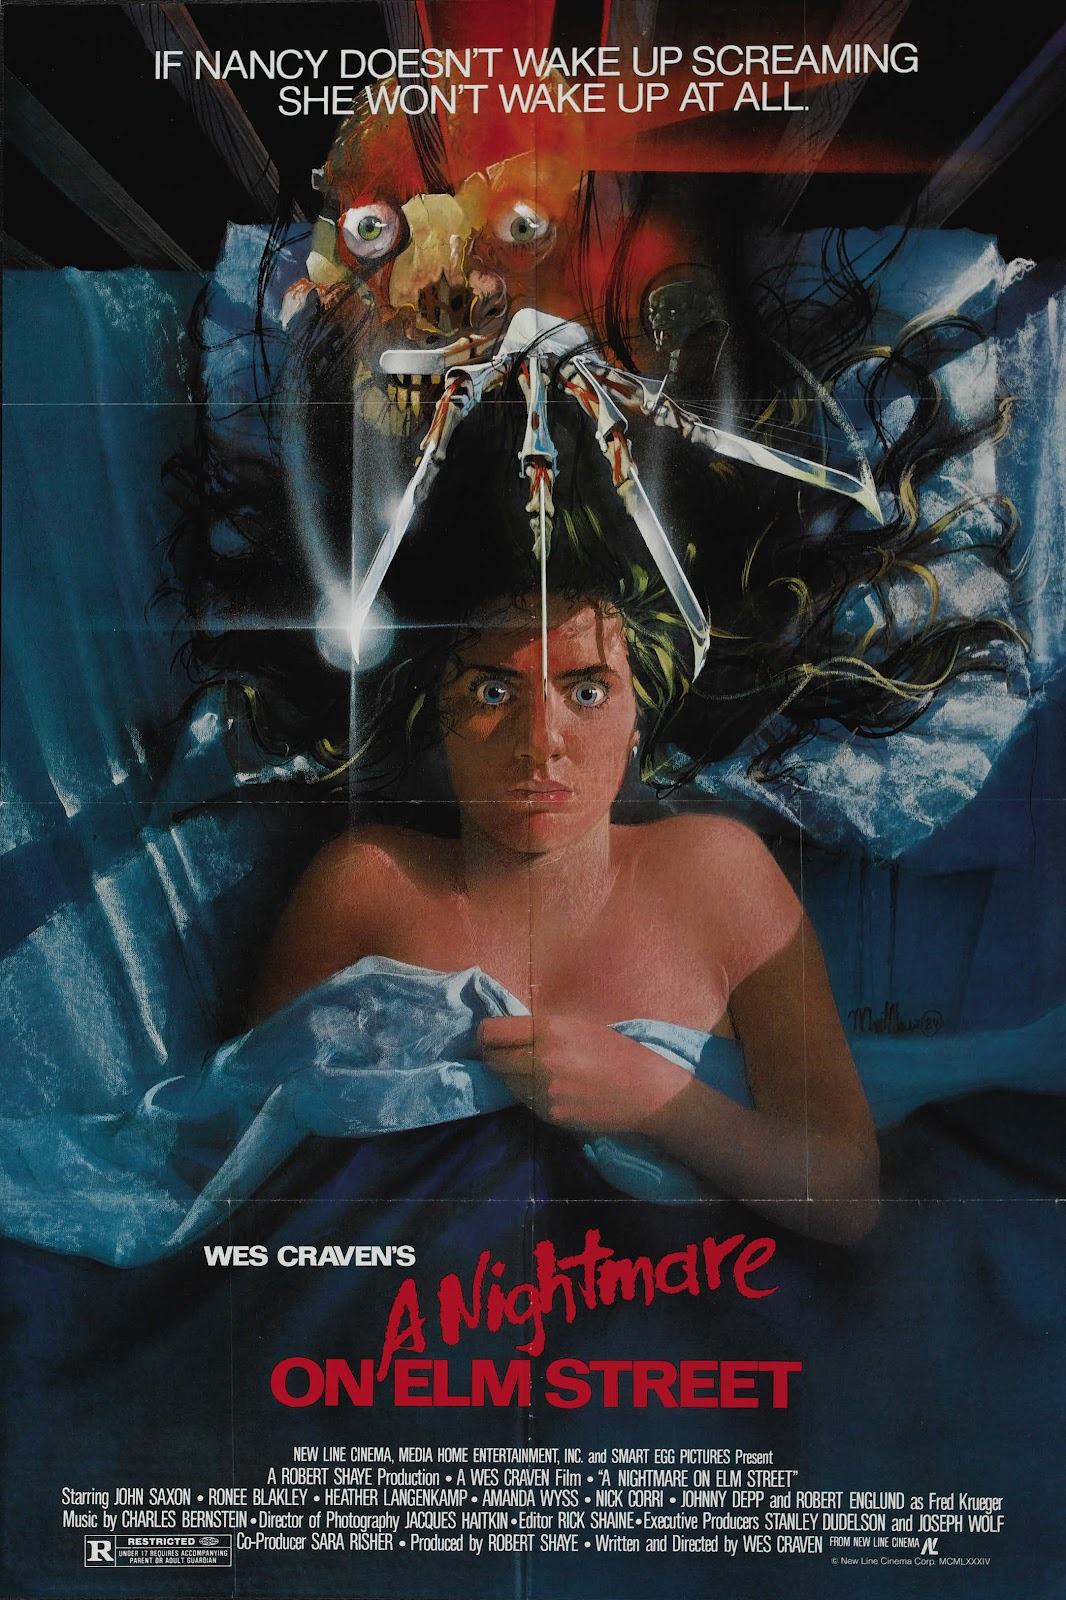 Ray Mission: Hump Day Posters: A Nightmare on Elm Street (1984